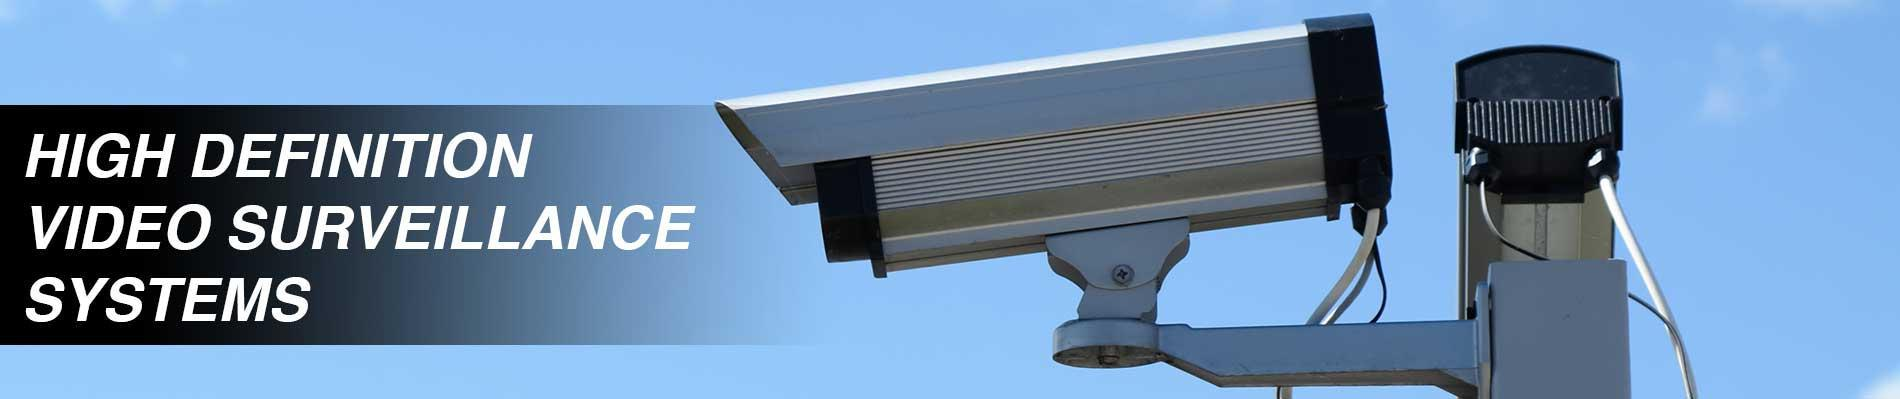 High Definition Video Surveillance Systems